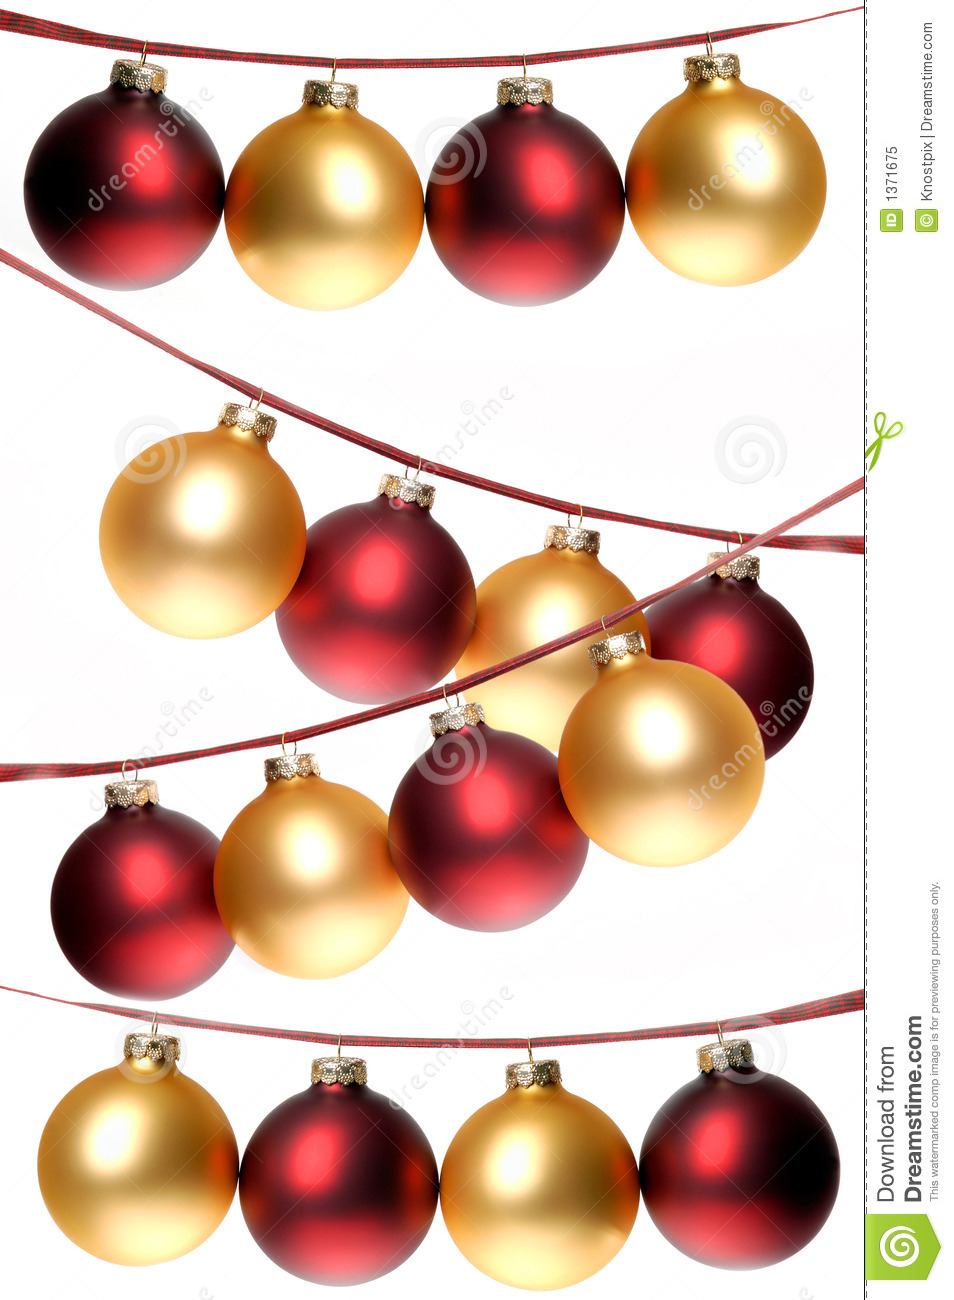 red and gold christmas ornaments strung in rows on plaid ribbon